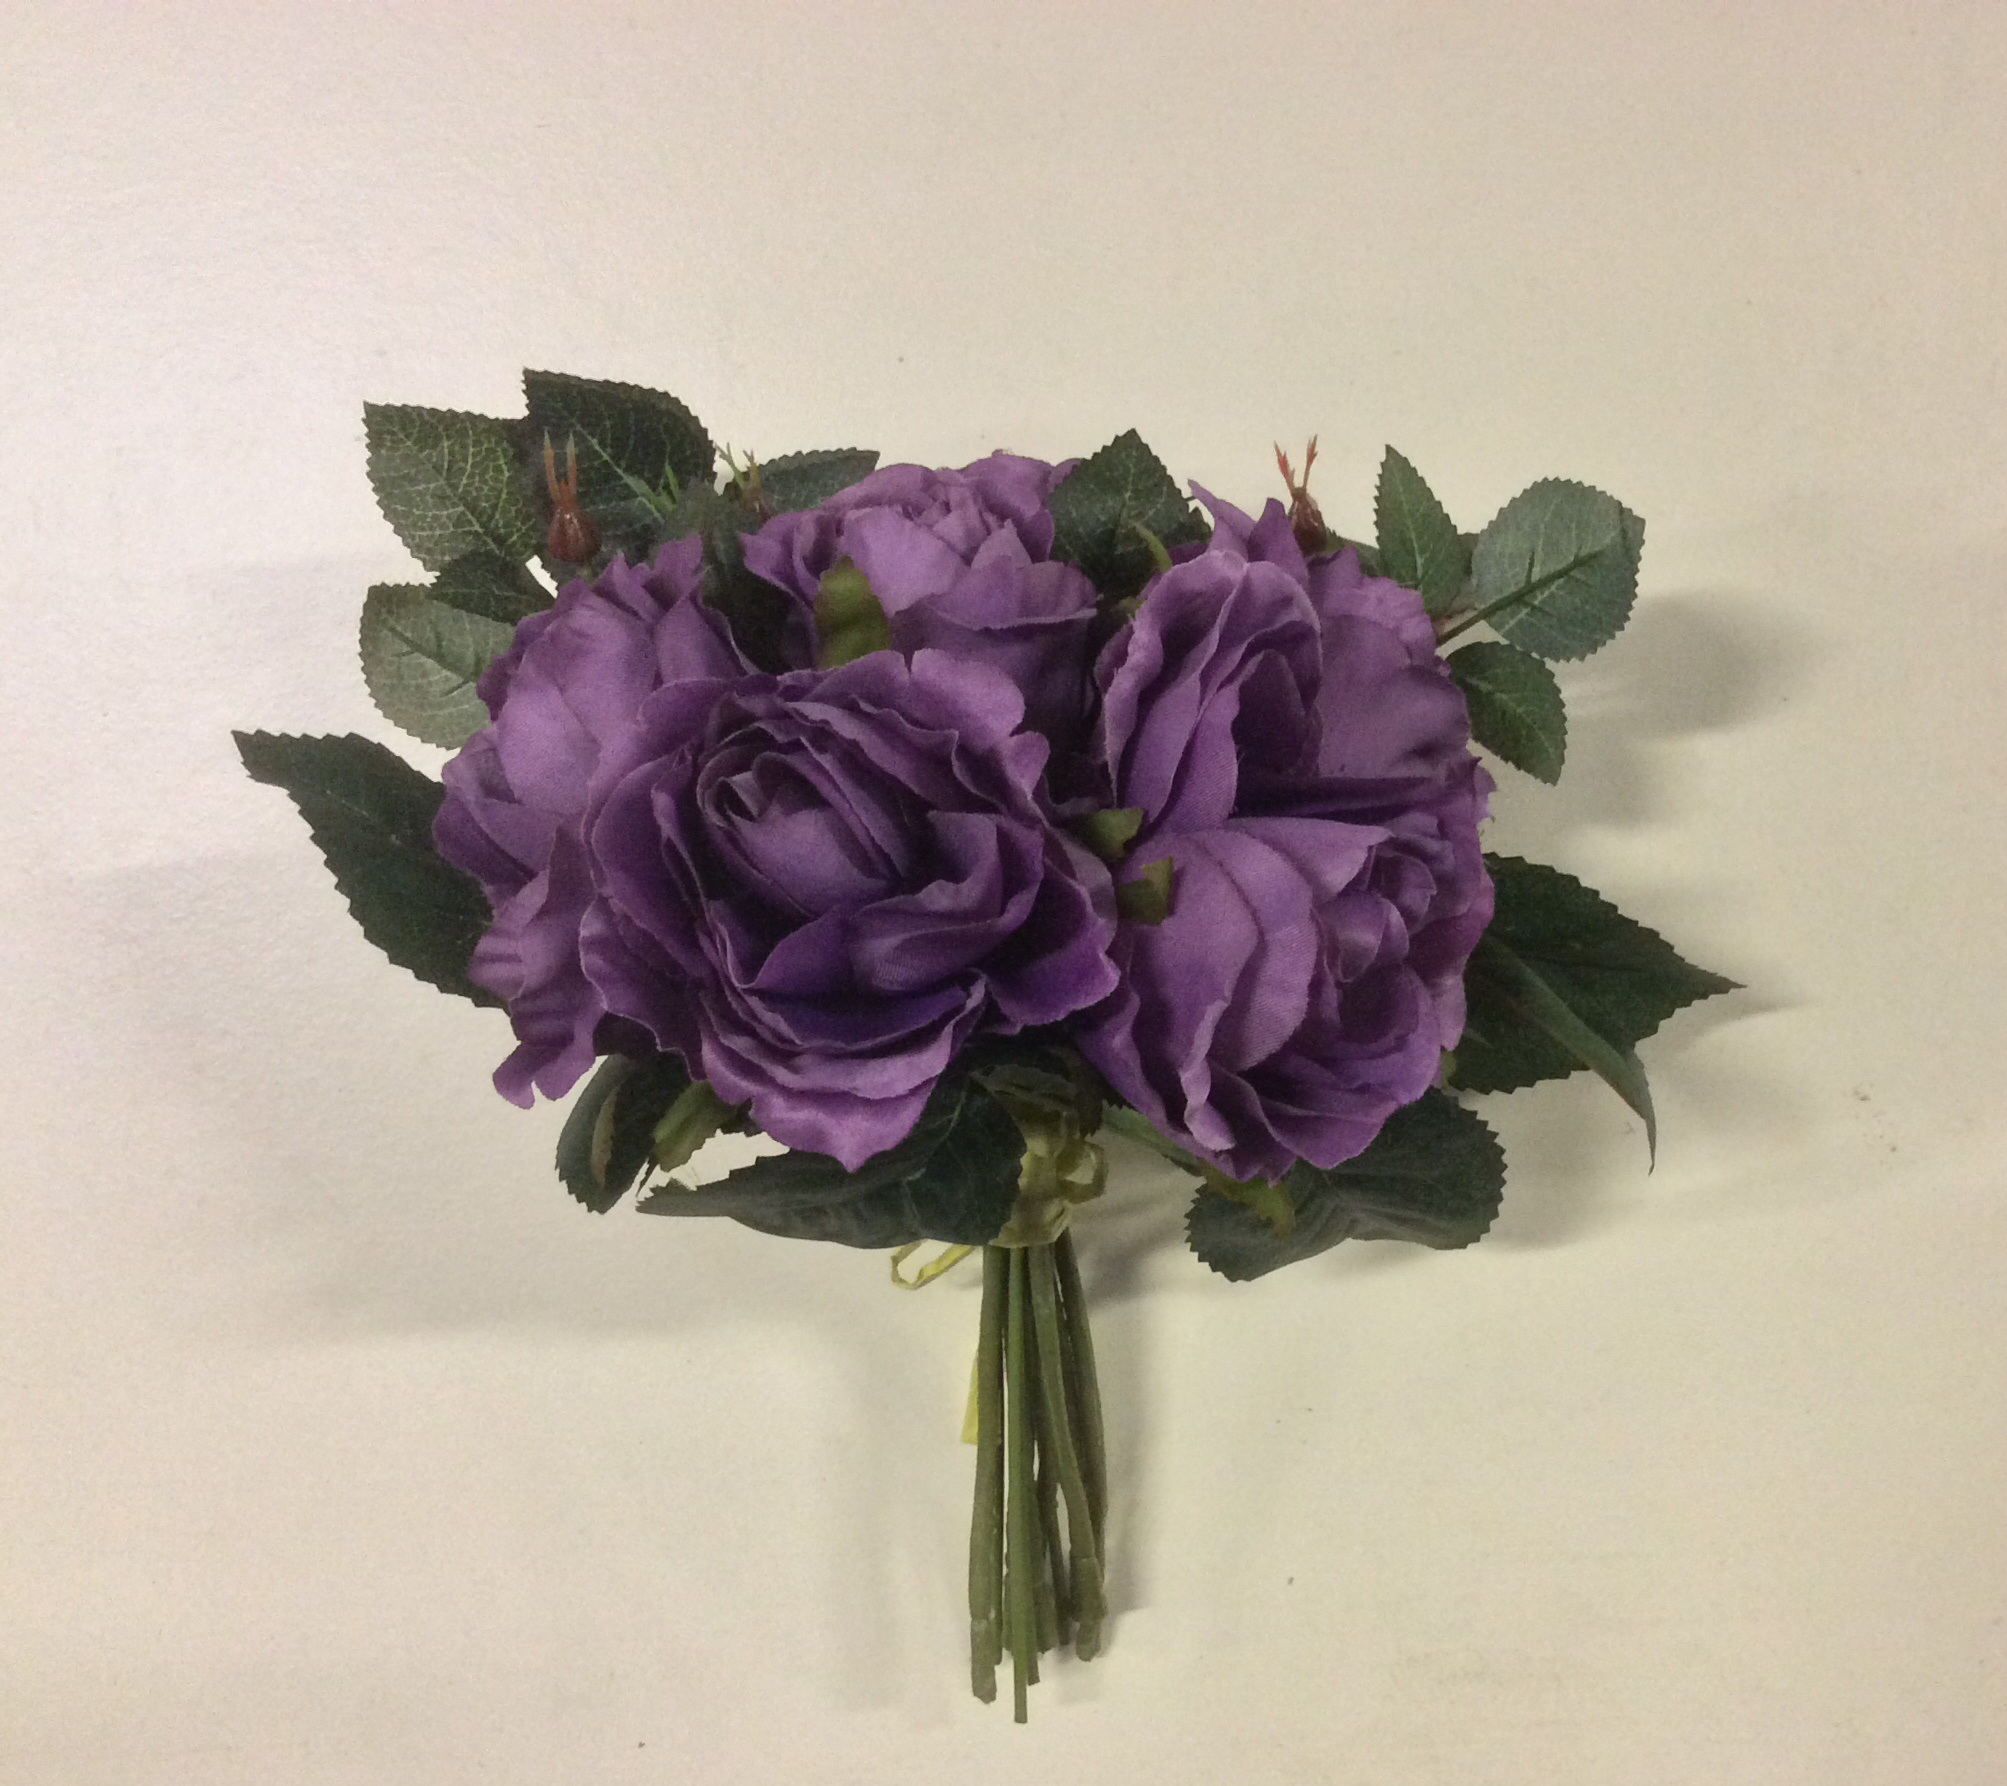 New Tied Bundle/Bouqet x7 Stems Queen Roses Silk Flowers Purple 9